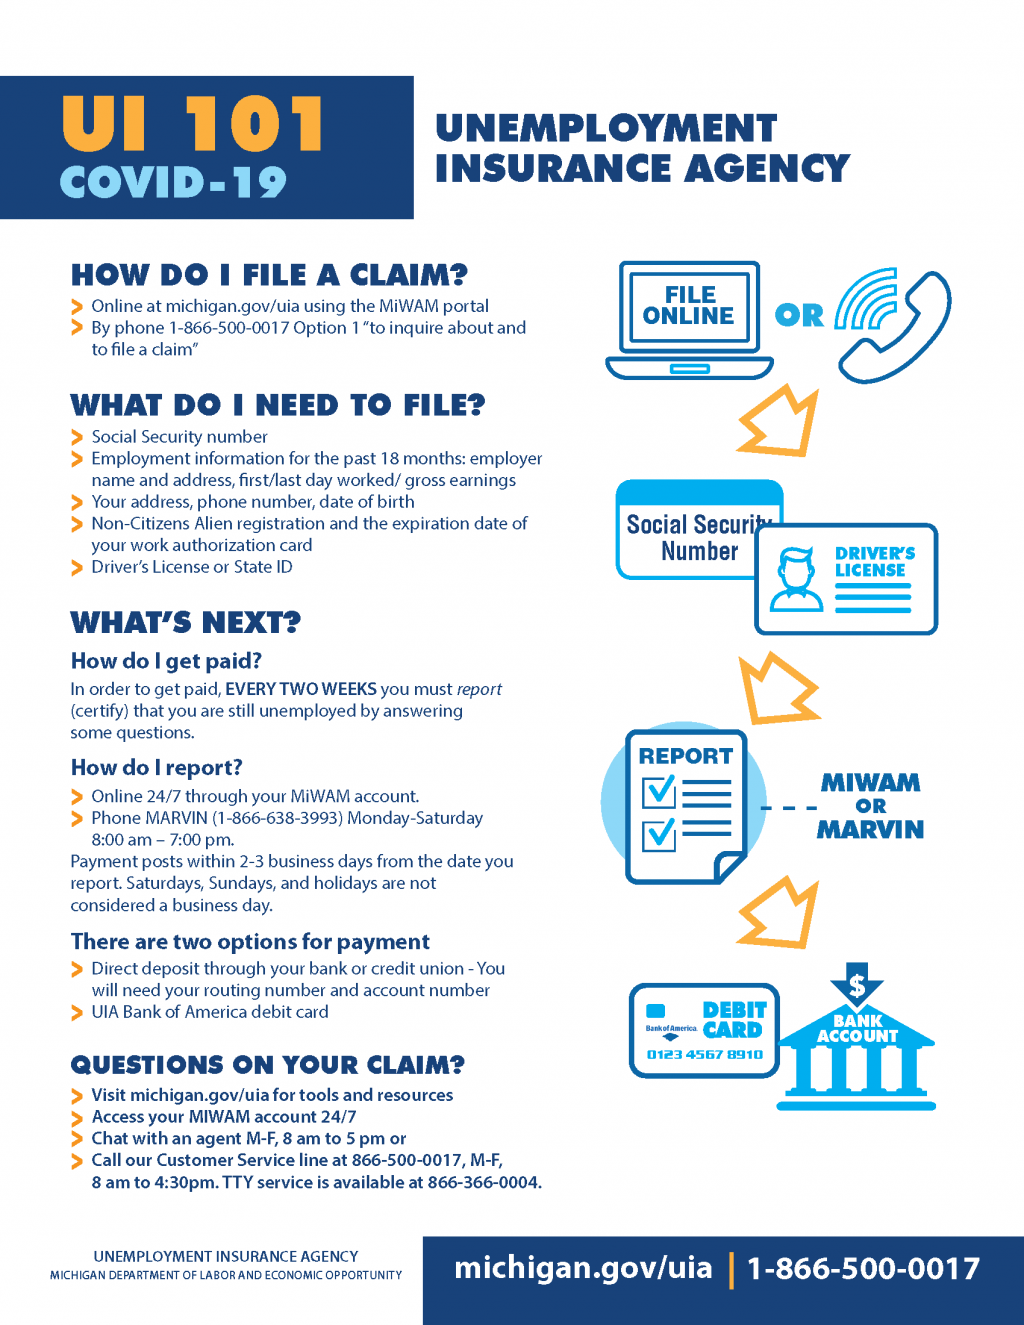 Unemployment Insurance Agency Infographic Regarding COVID-19